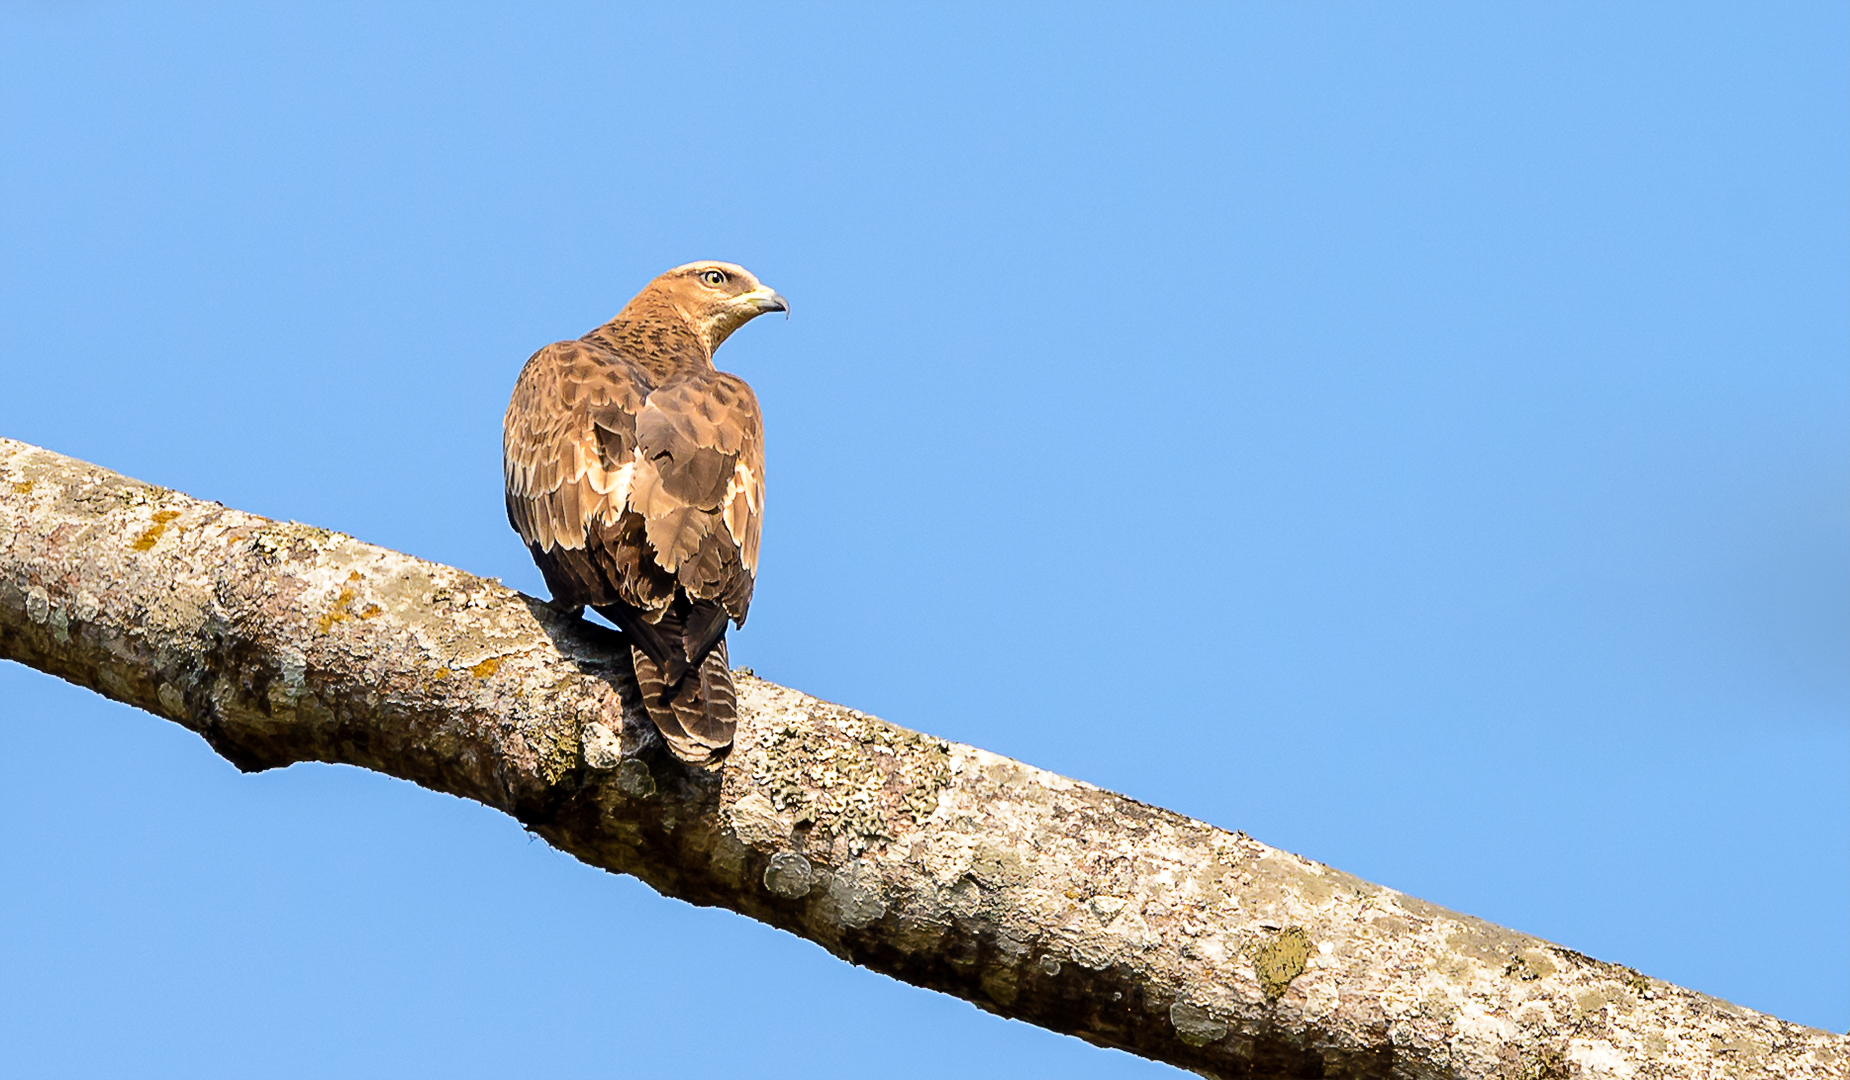 Crested Honey Buzzard